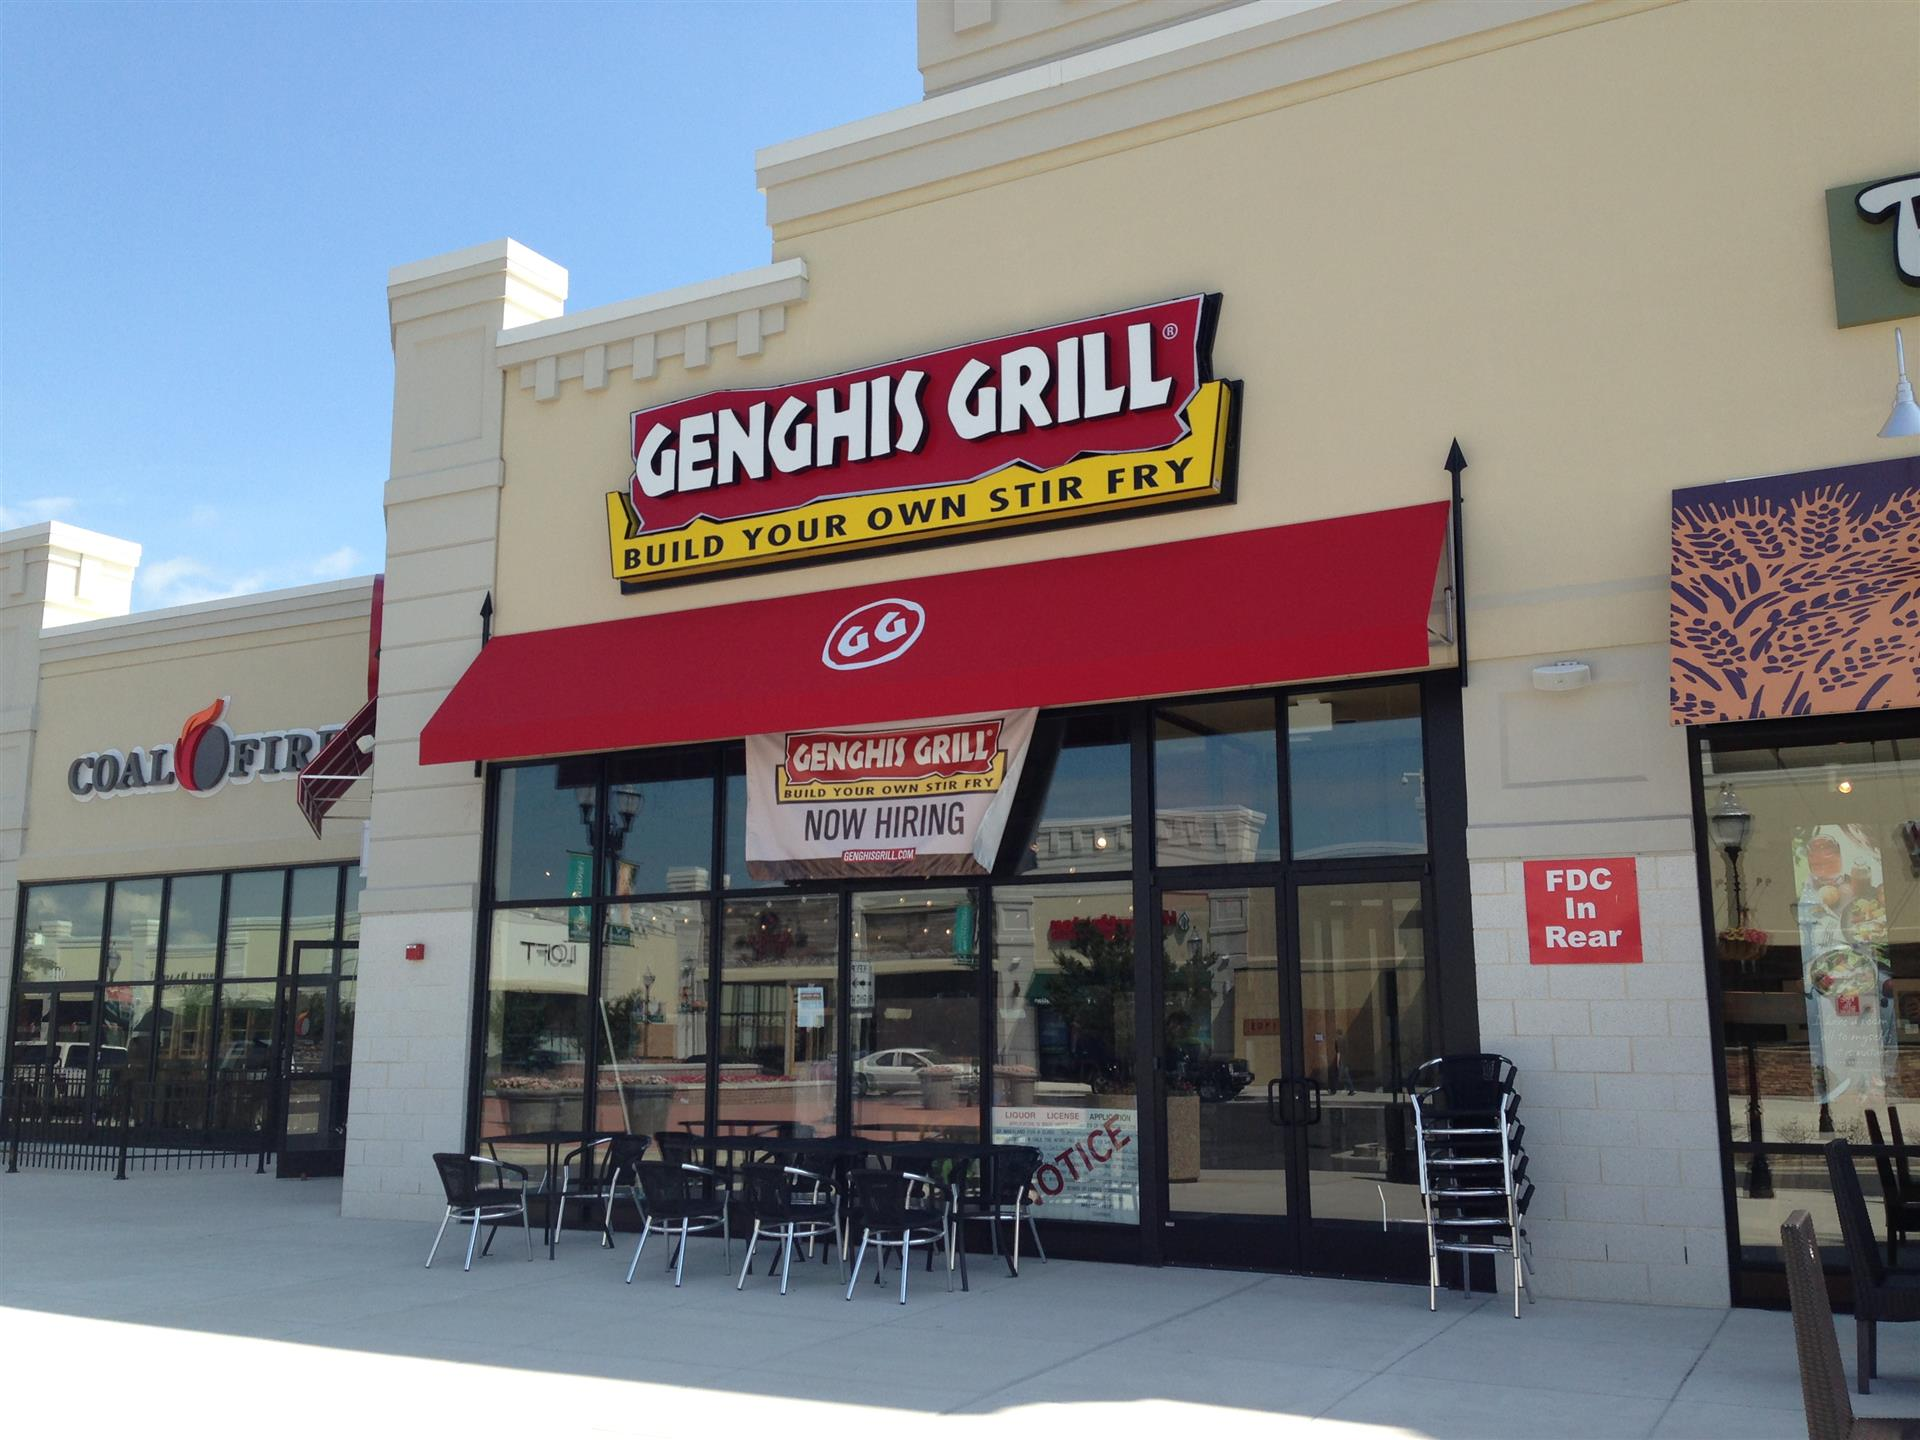 gallery photo : Genghis Grill Restaurant